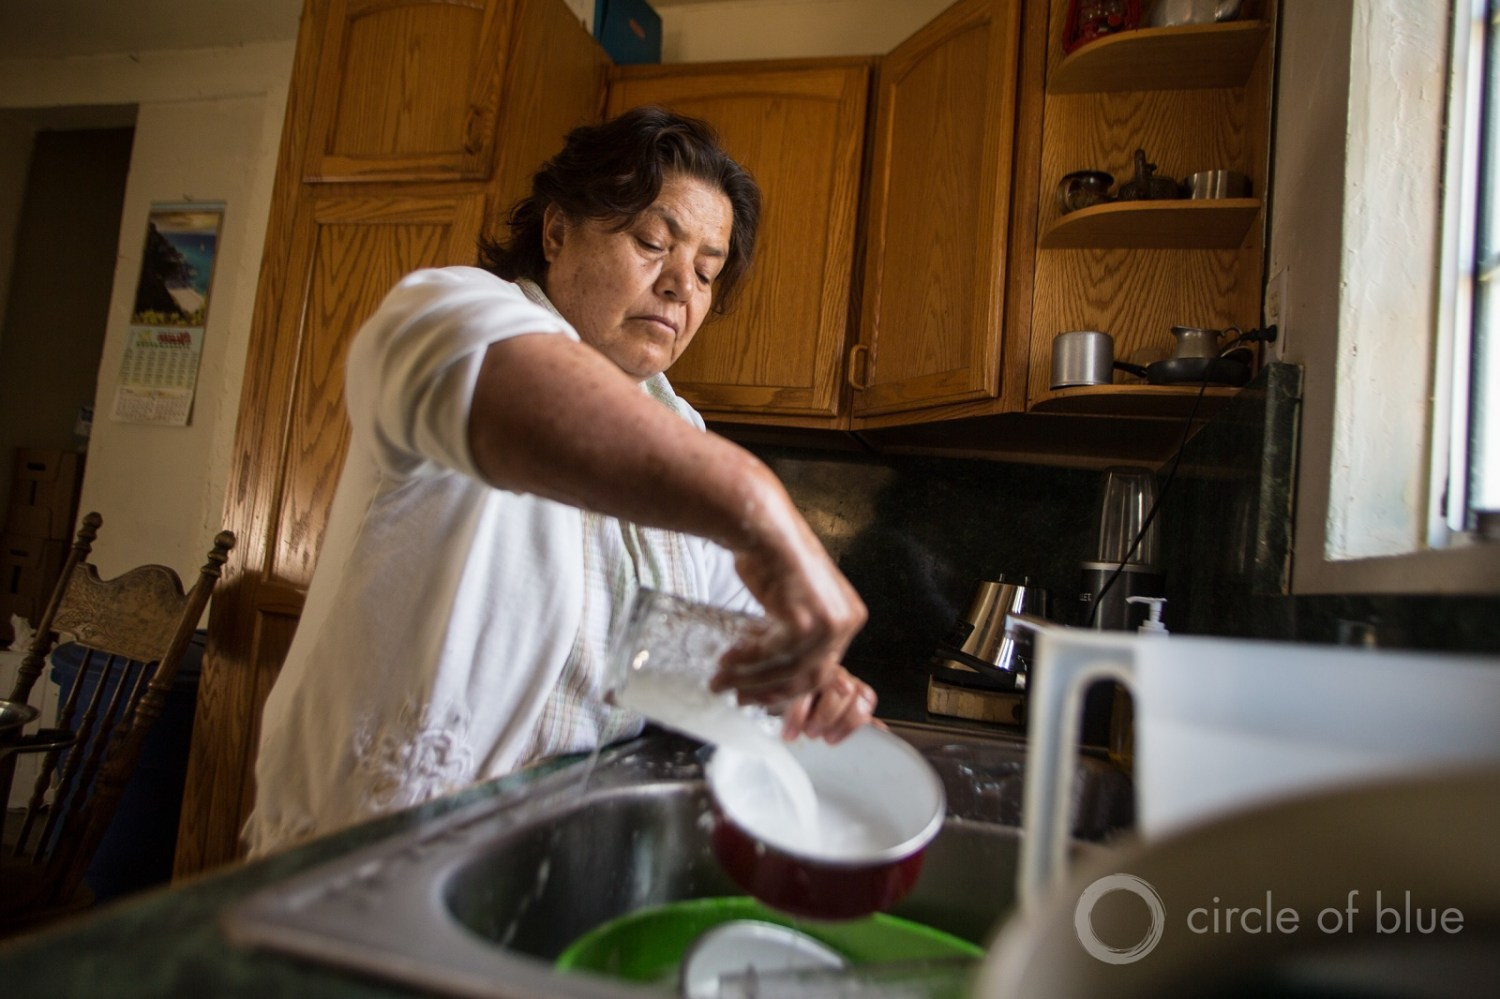 Belan Ruia makes every drop of water count as she washes dishes in April 2015 in her East Porterville, California, home. Like her neighbors, her well went dry during the state's historic drought. She and her husband, Artemio, got water from a nearby fire station. Photo © J. Carl Ganter / Circle of Blue